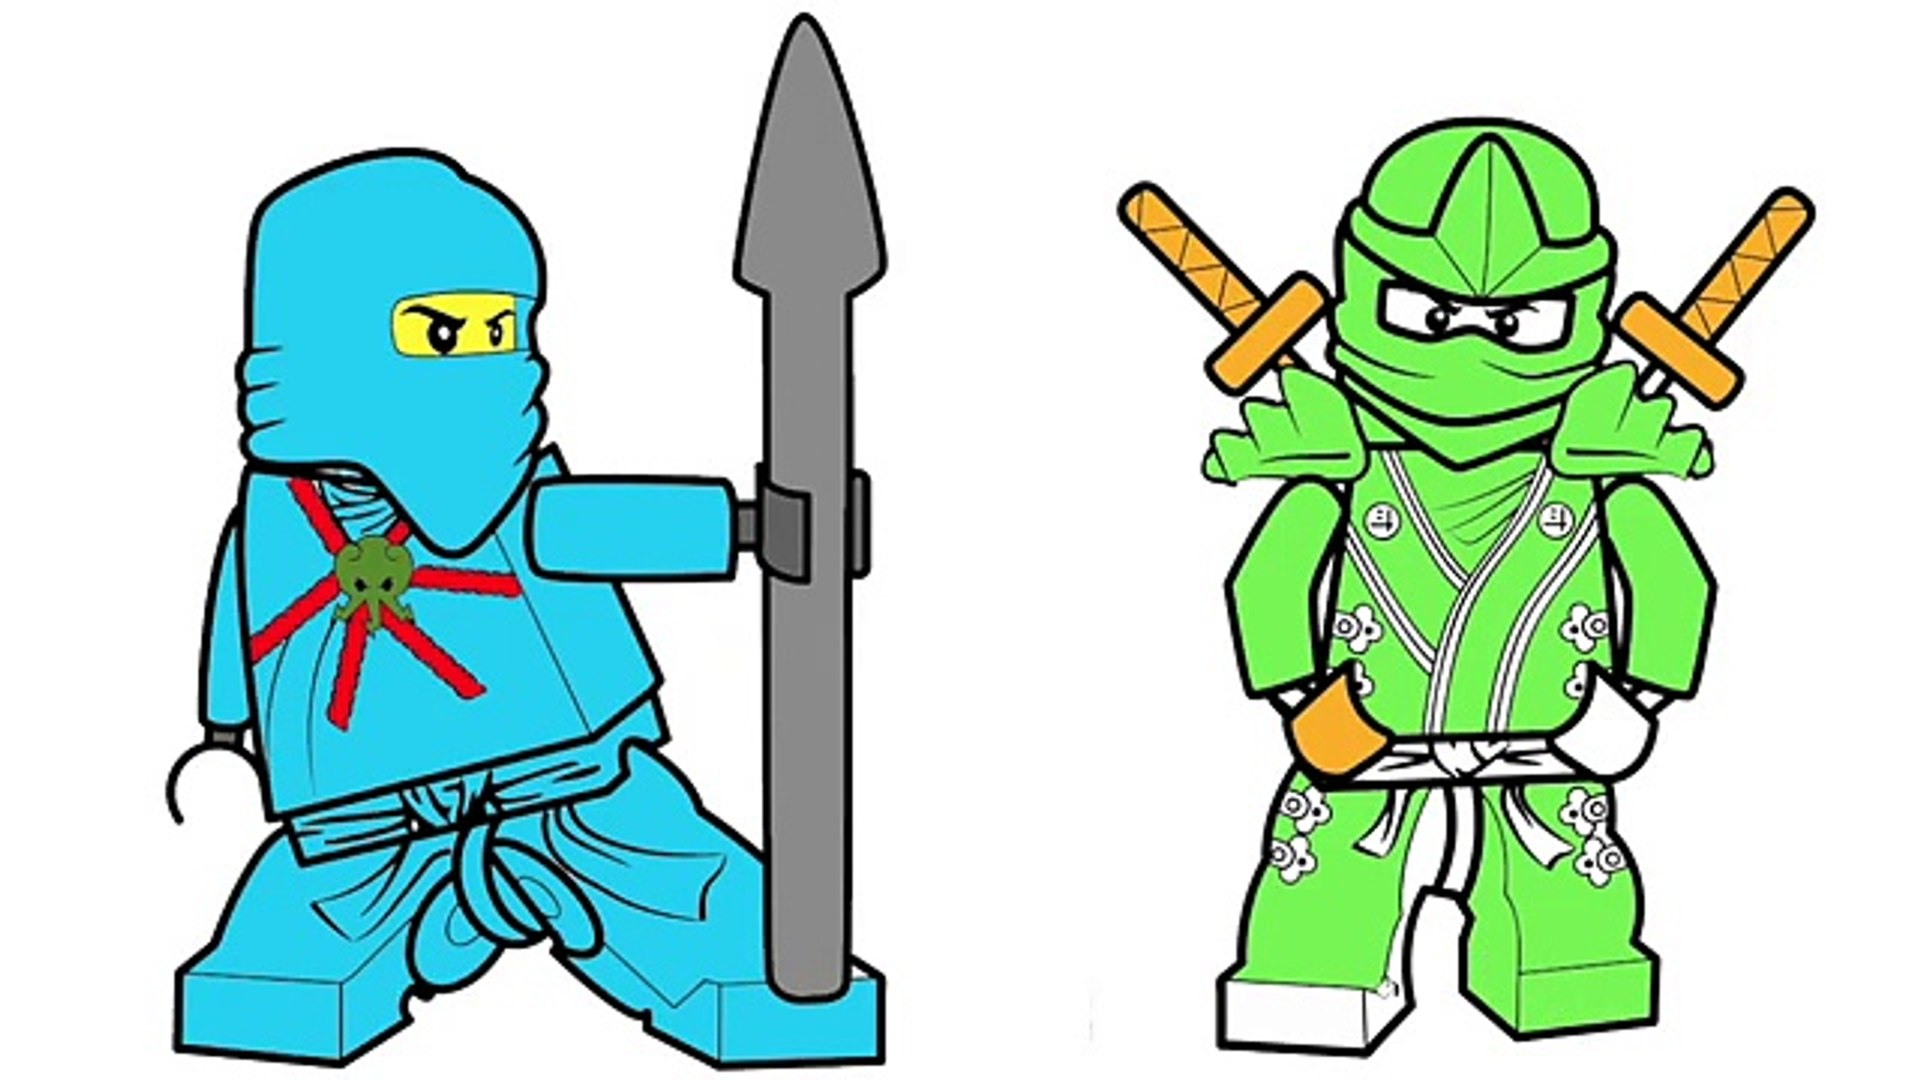 Lego Ninjago Jay And Lloyd Coloring Page Fun Coloring Activity For Kids Toddlers Children Dailymotion Video